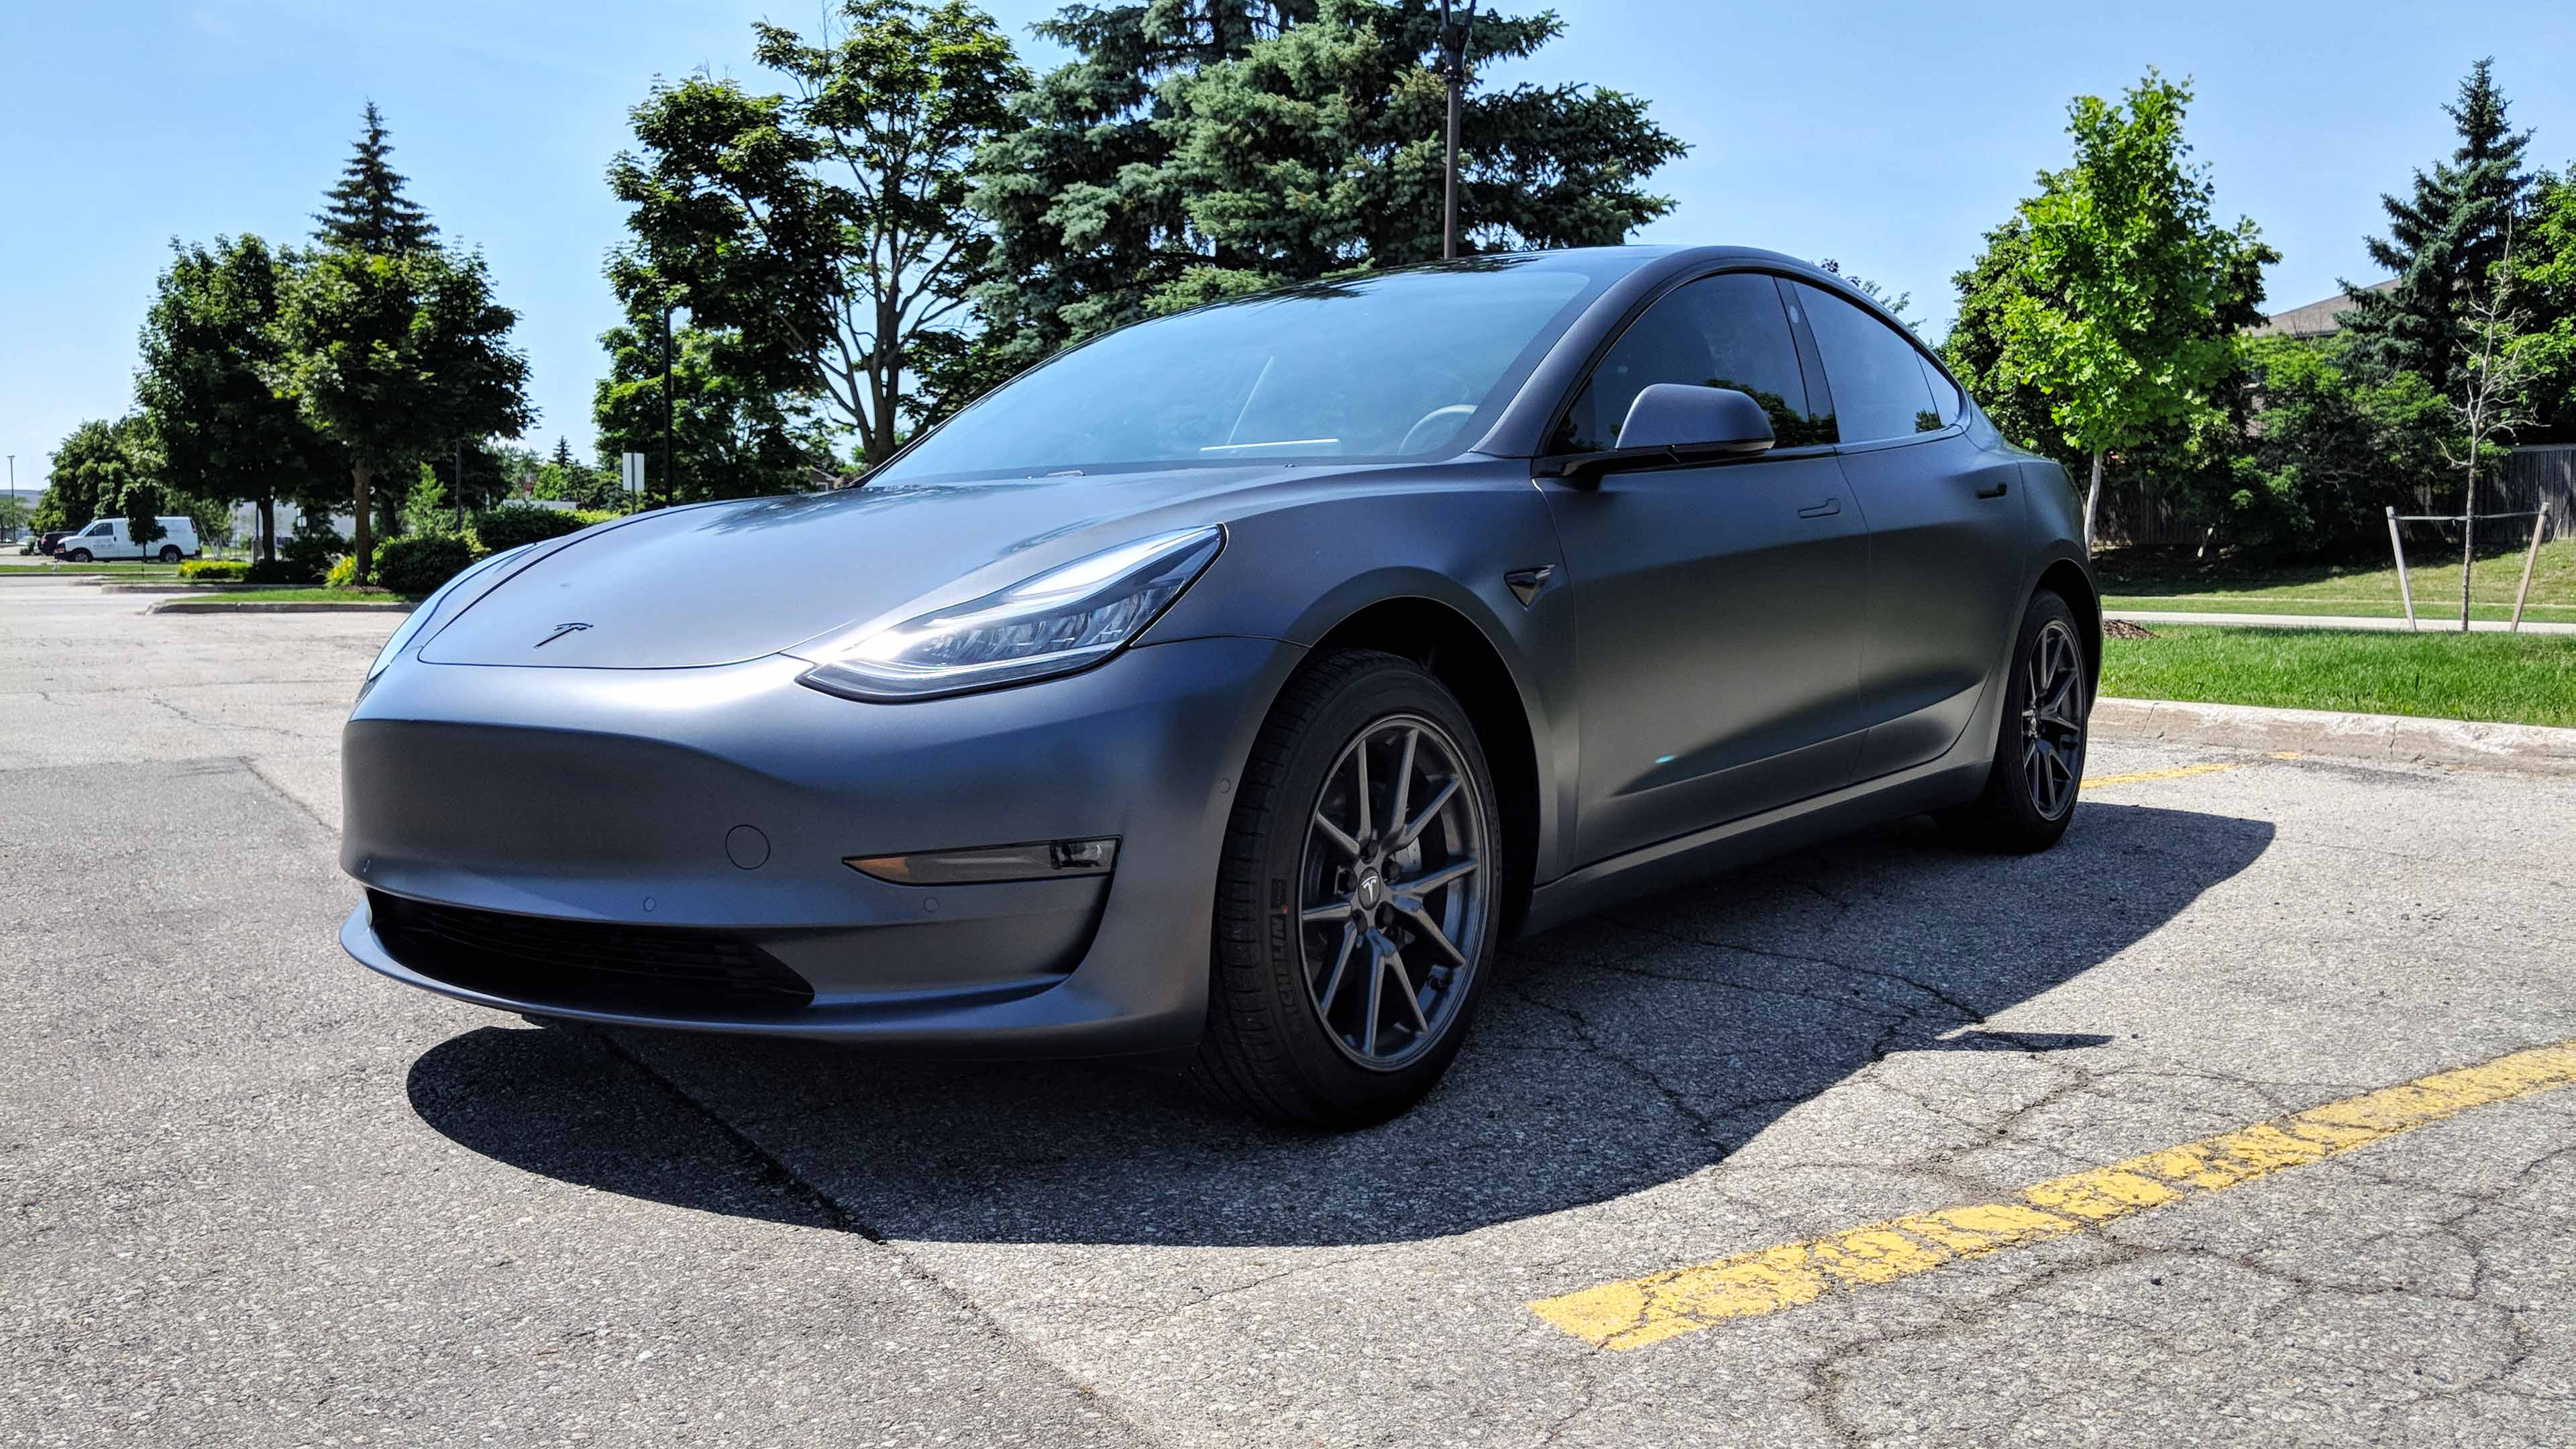 Tesla Model 3 Xpel paint protection film wrap with gloss black chrome delete